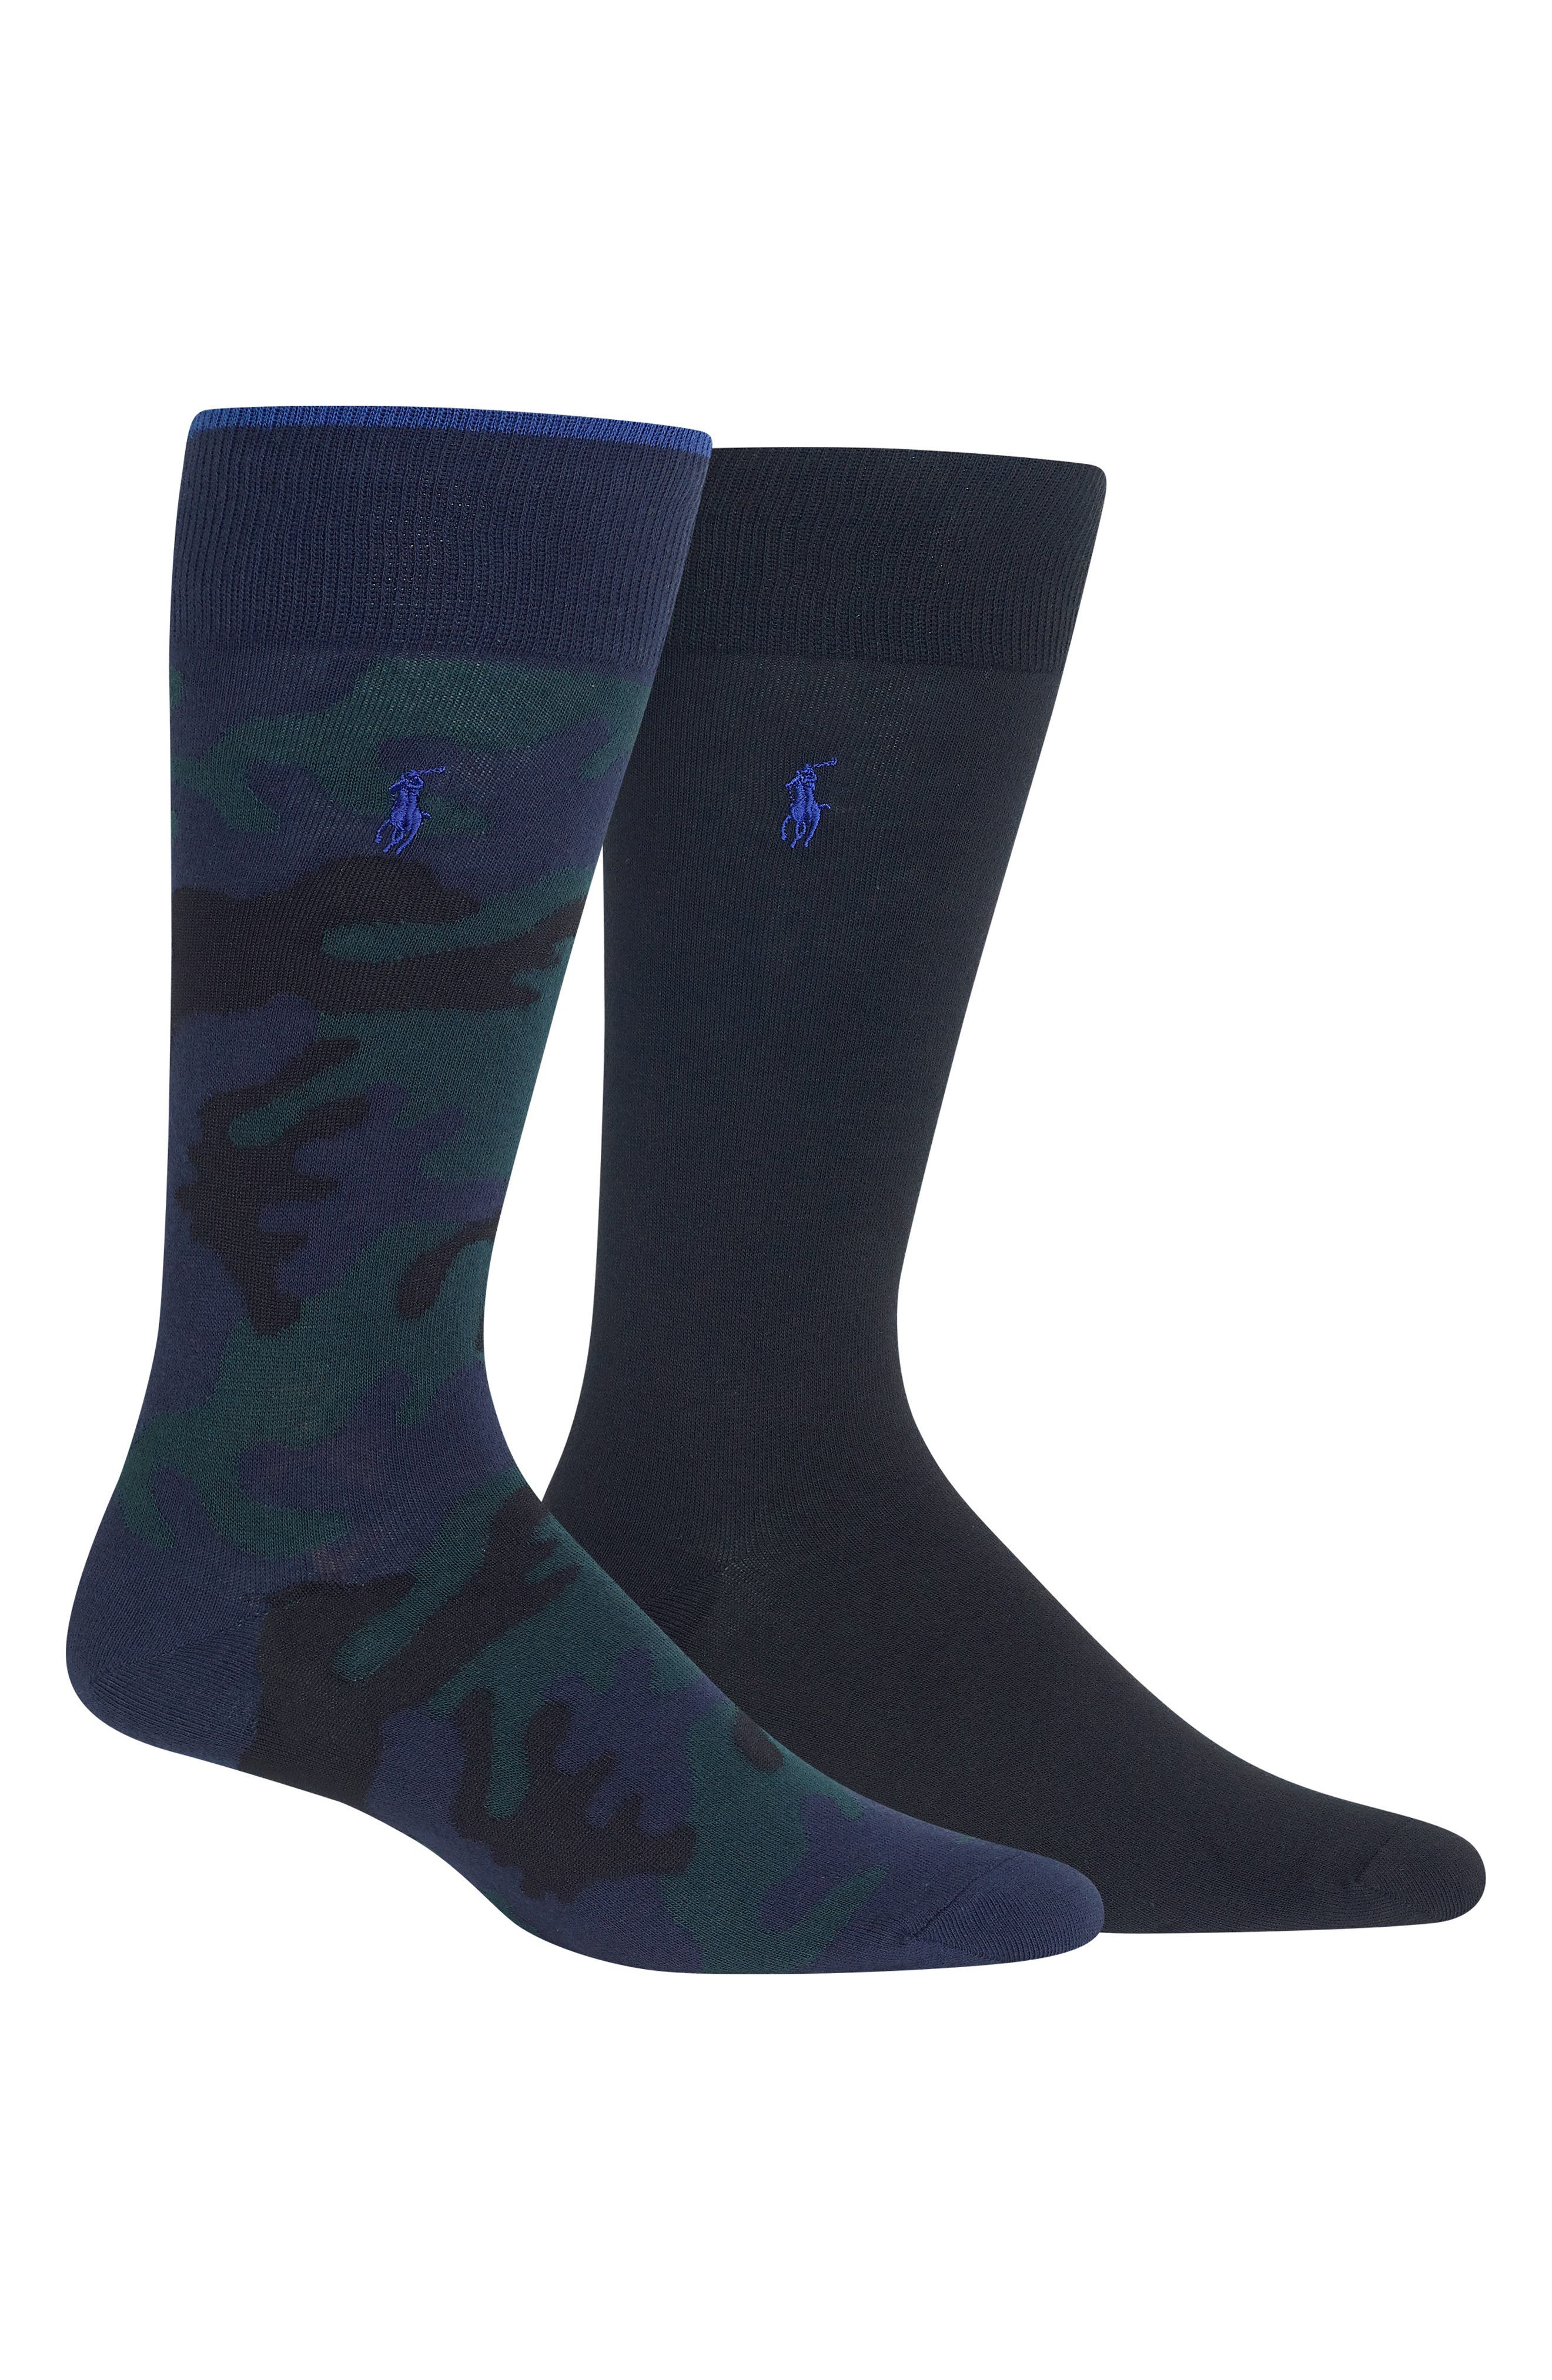 2-Pack Camo & Solid Socks,                         Main,                         color, NAVY